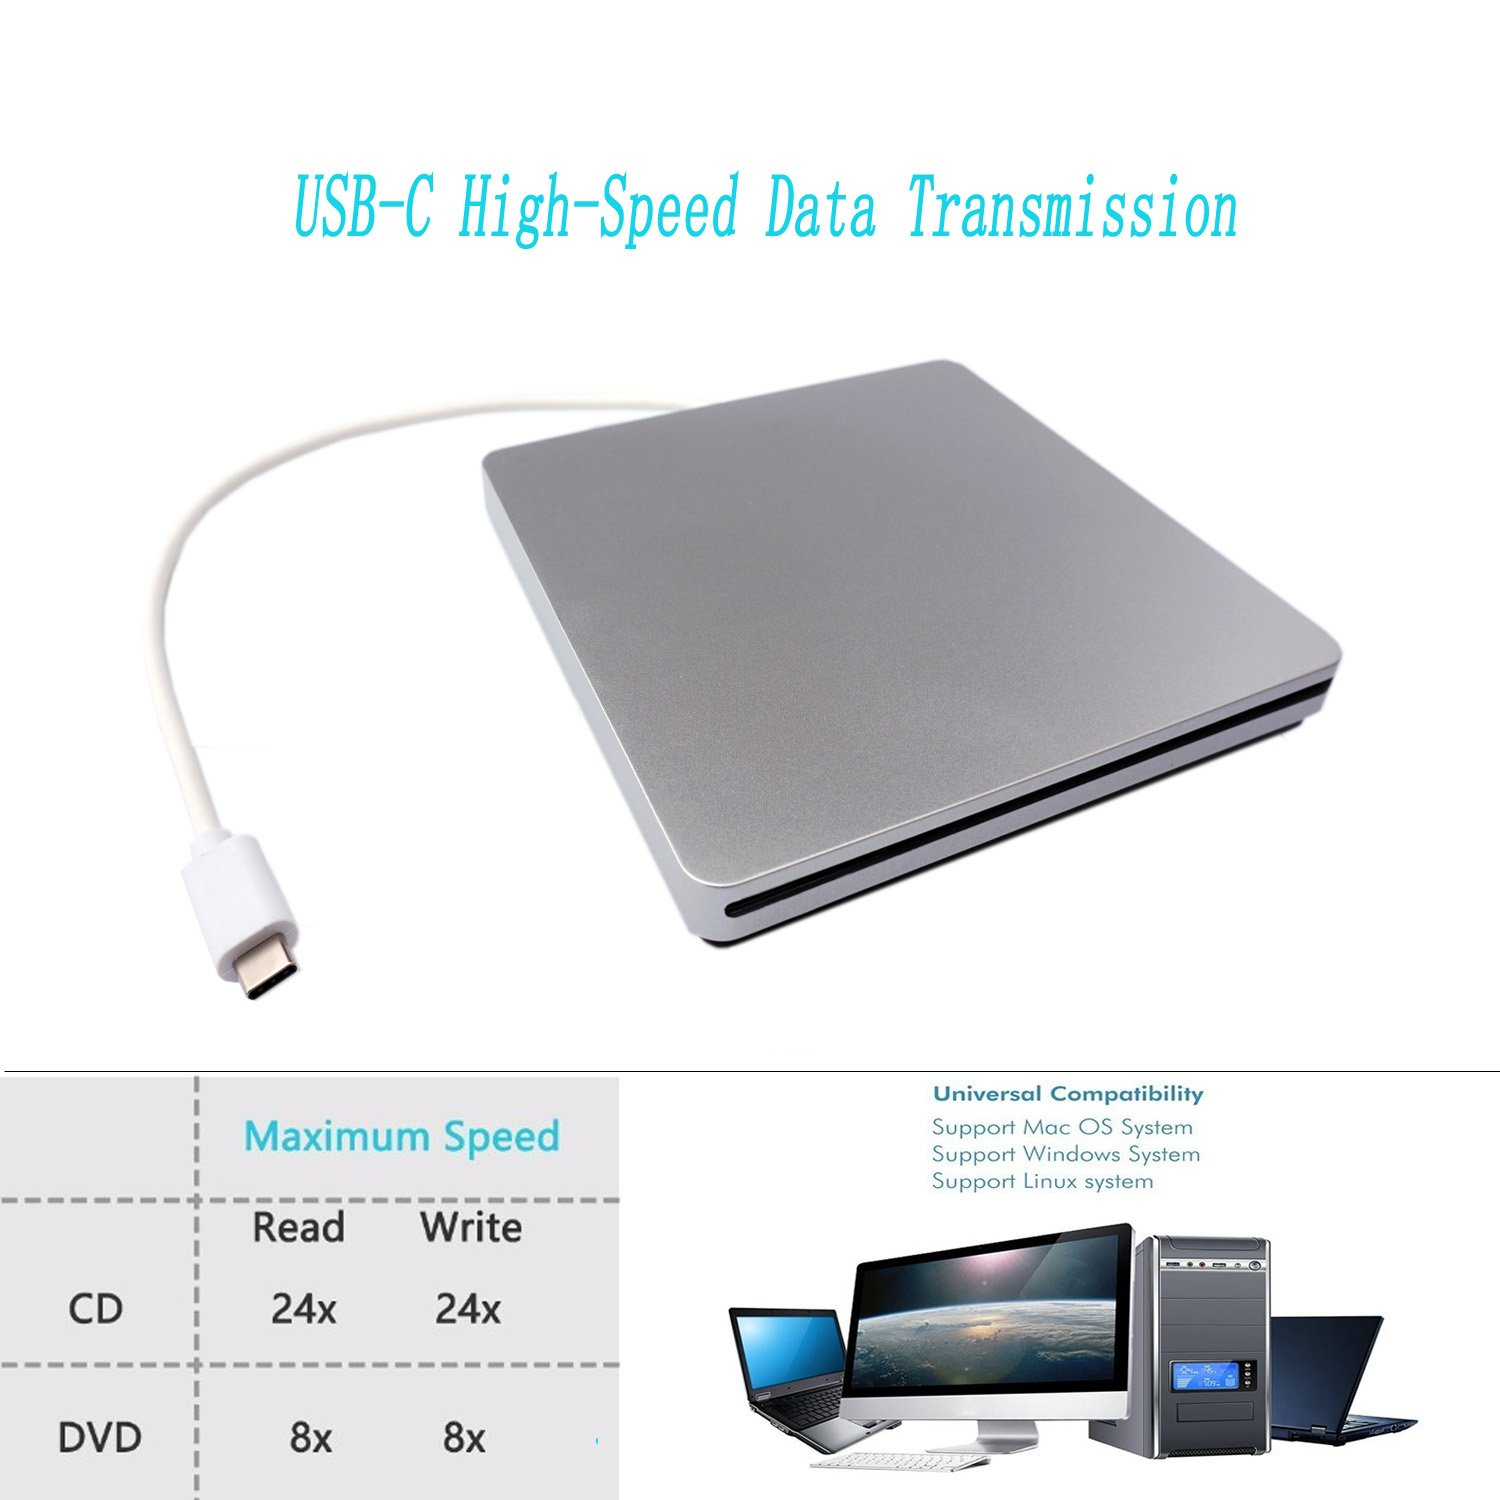 TPfeel USB C DVD Drive External Type C Superdrive Slot-in CD DVD-RW Burner Drive for Apple MacBook iMac and Other PC with USB C Port